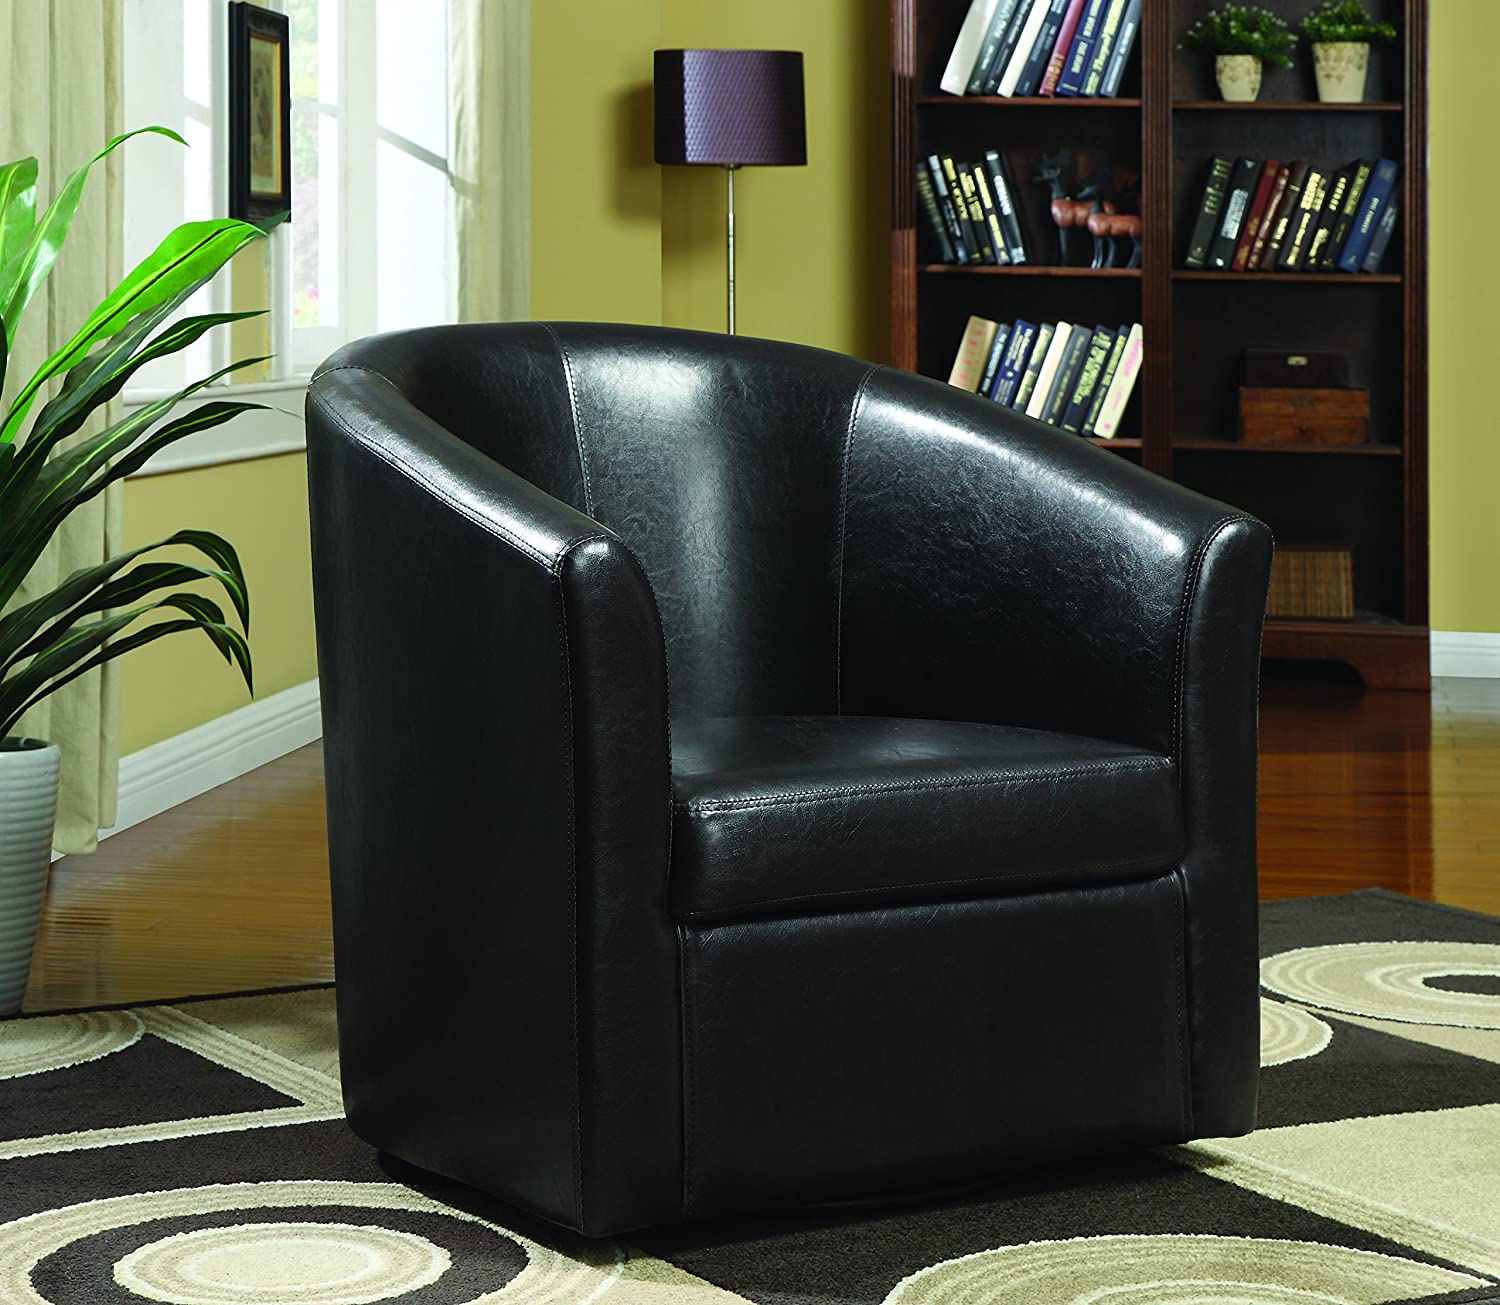 Coaster Home Furnishings Contemporary Accent Chair - Dark Brown-Dark Brown